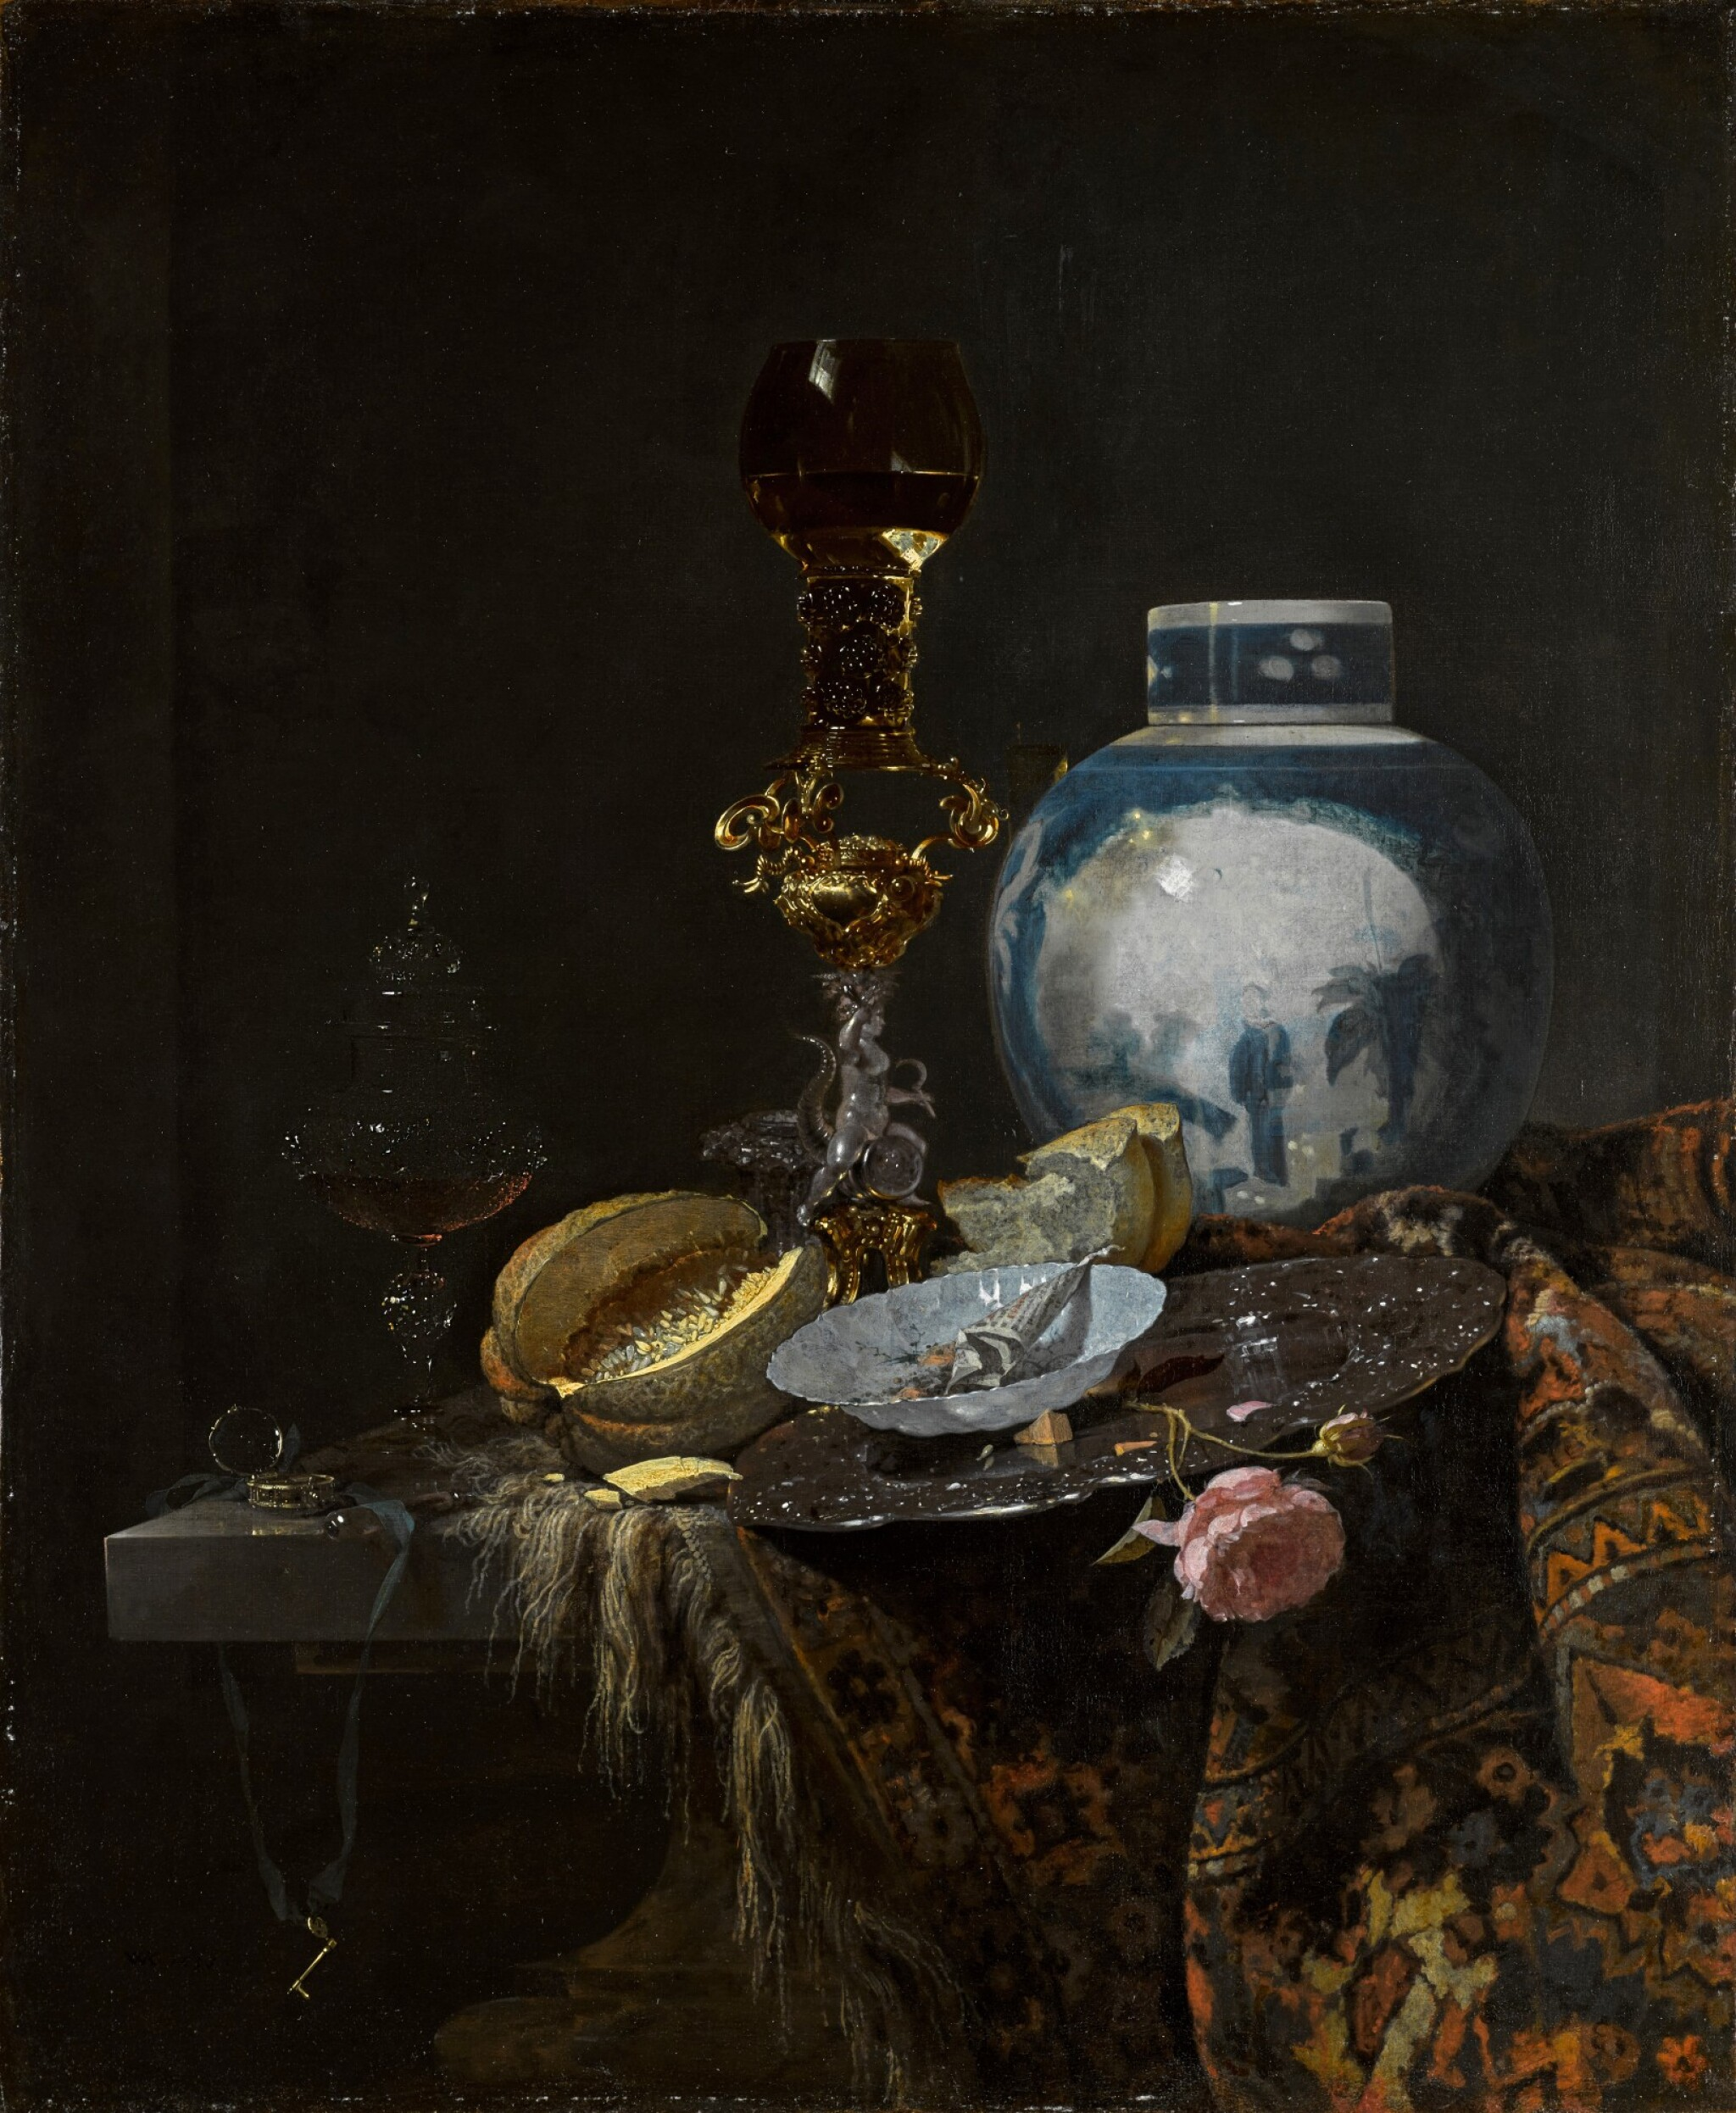 View full screen - View 1 of Lot 38. Still life with a Chinese ginger jar, silver, objects of vertu, a cut melon, bread, a paper packet in a porcelain bowl, and a pink rose, all on a table draped with a Persian carpet | 《靜物:桌上的瓷薑罐、古董銀器、切開的蜜瓜、麵包、瓷碟上的紙捲與粉紅玫瑰,桌面鋪波斯毛毯》.